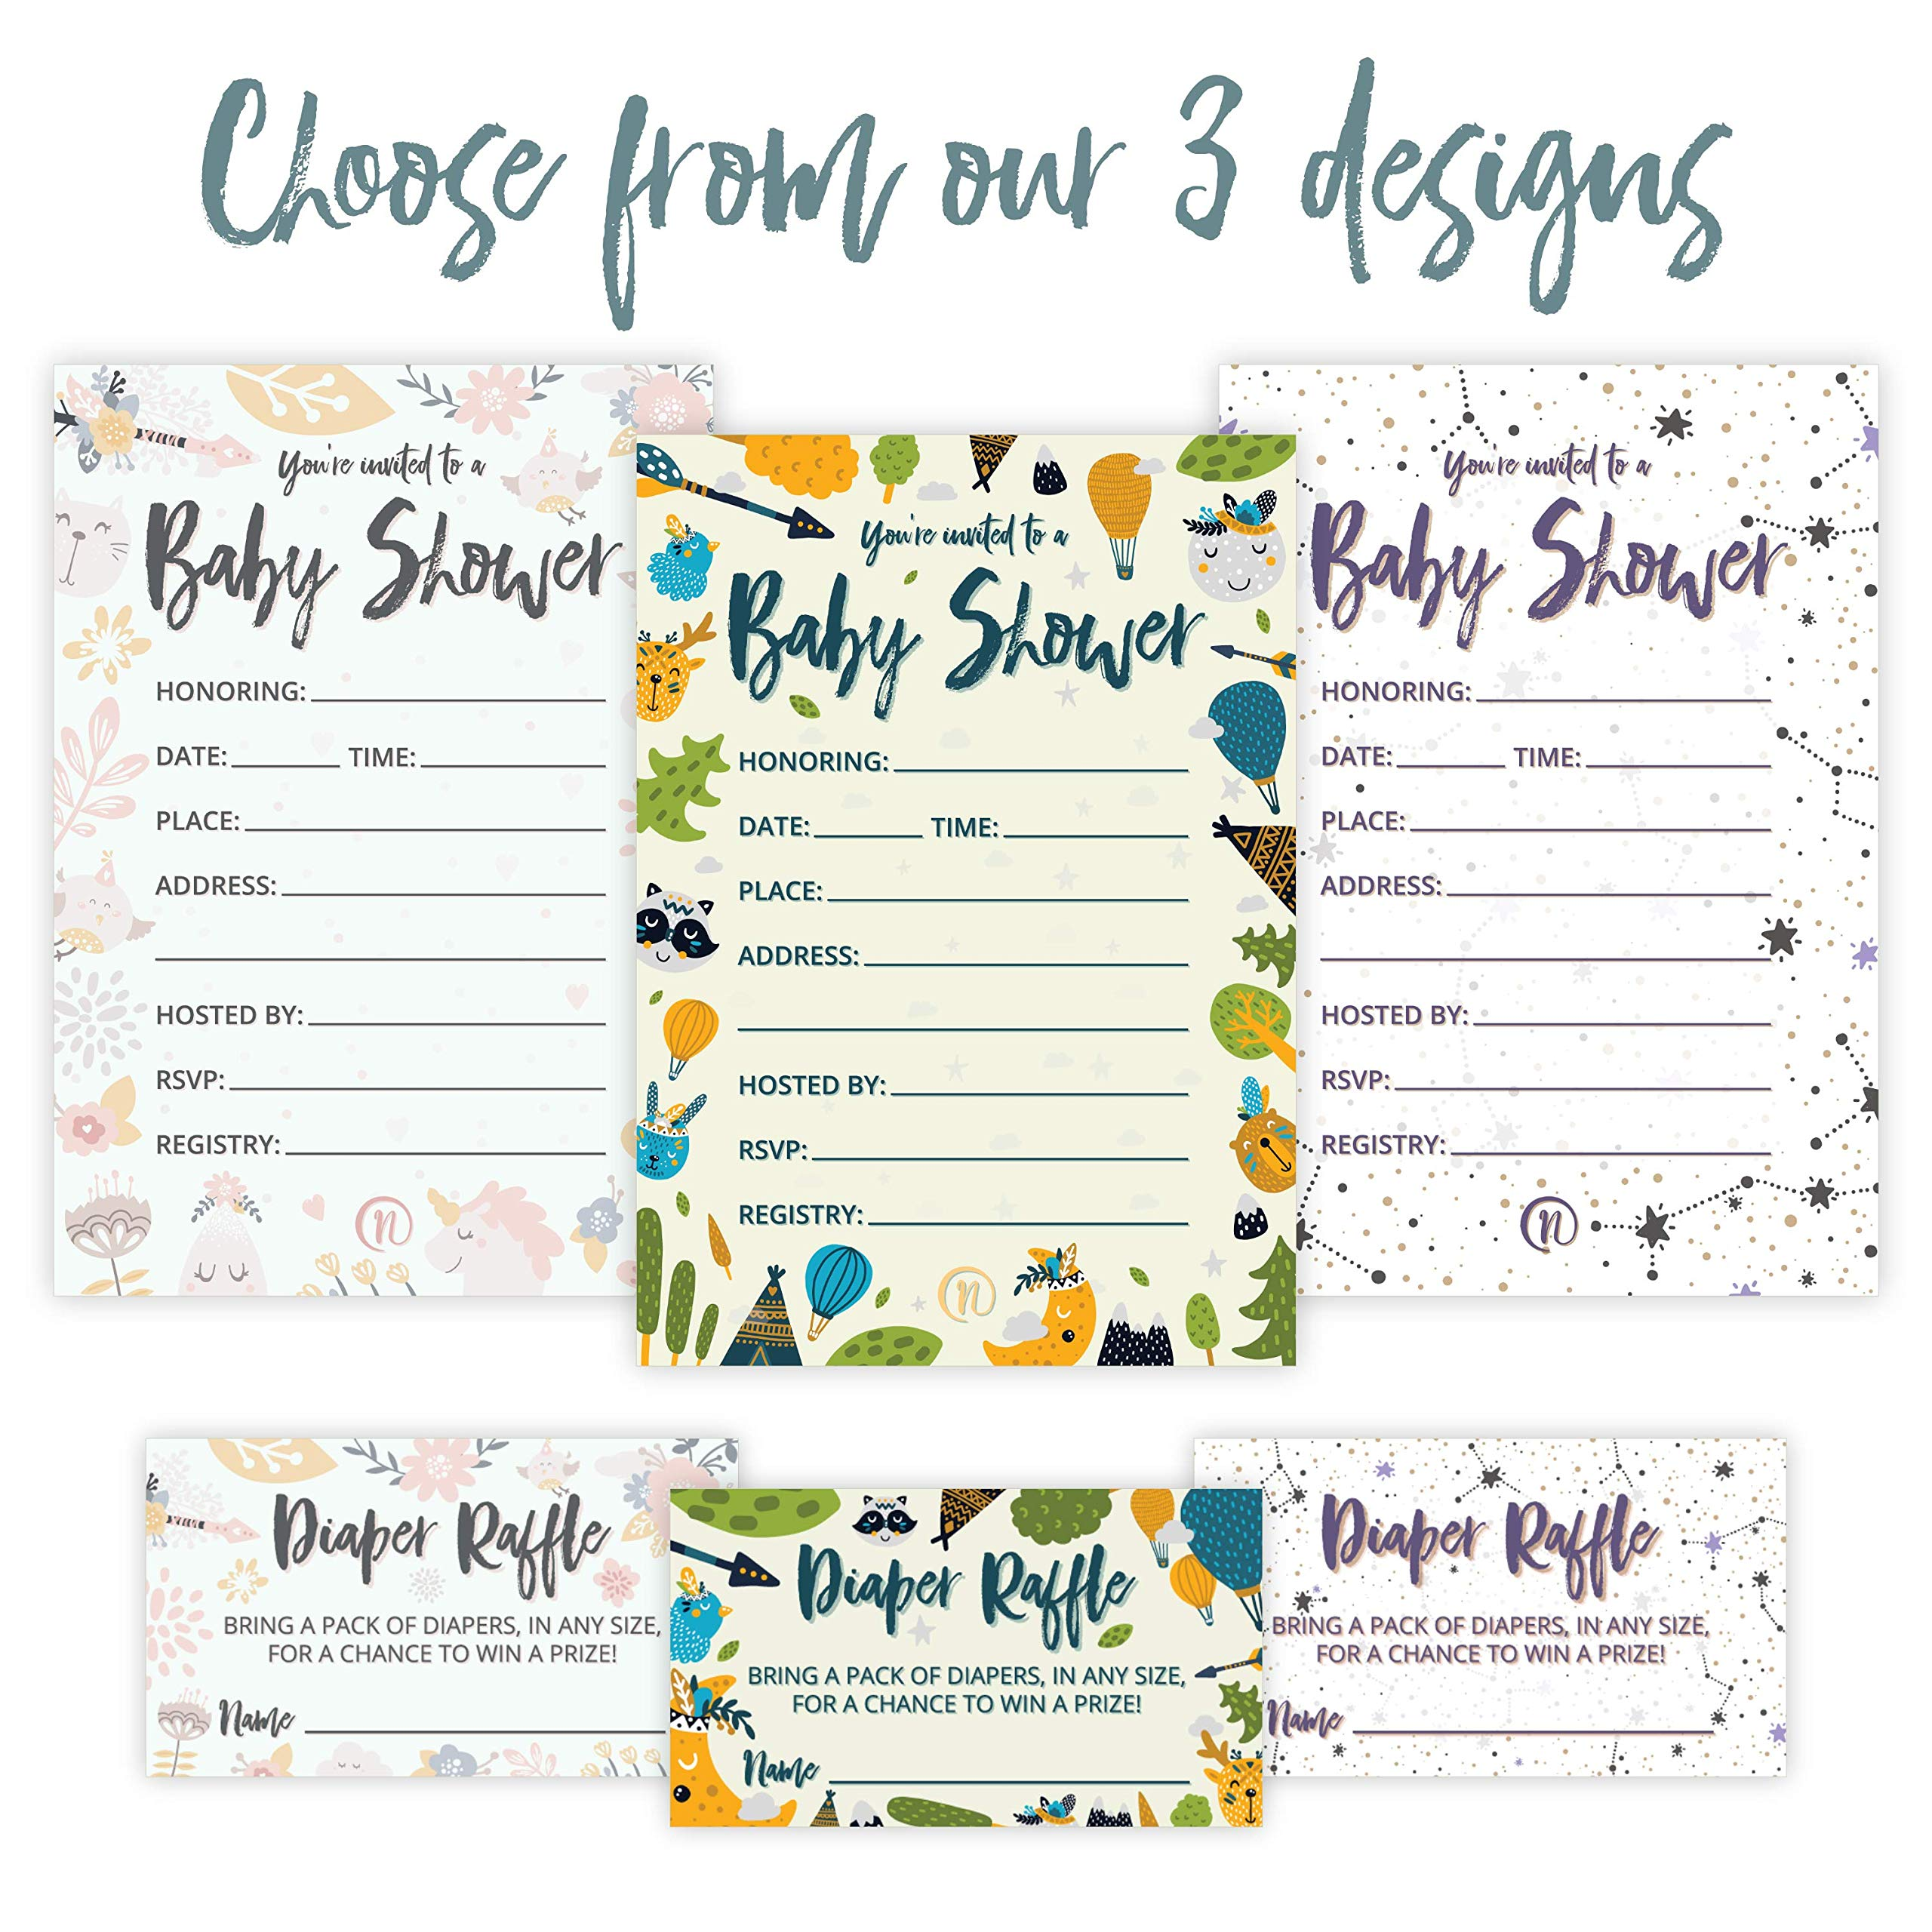 Baby Shower Invitation Cards with Diaper Raffle Tickets for Boy and Girl - Woodland Forest Animals - Set of 25 Party Invites - by Nalalife by Nalalife (Image #5)